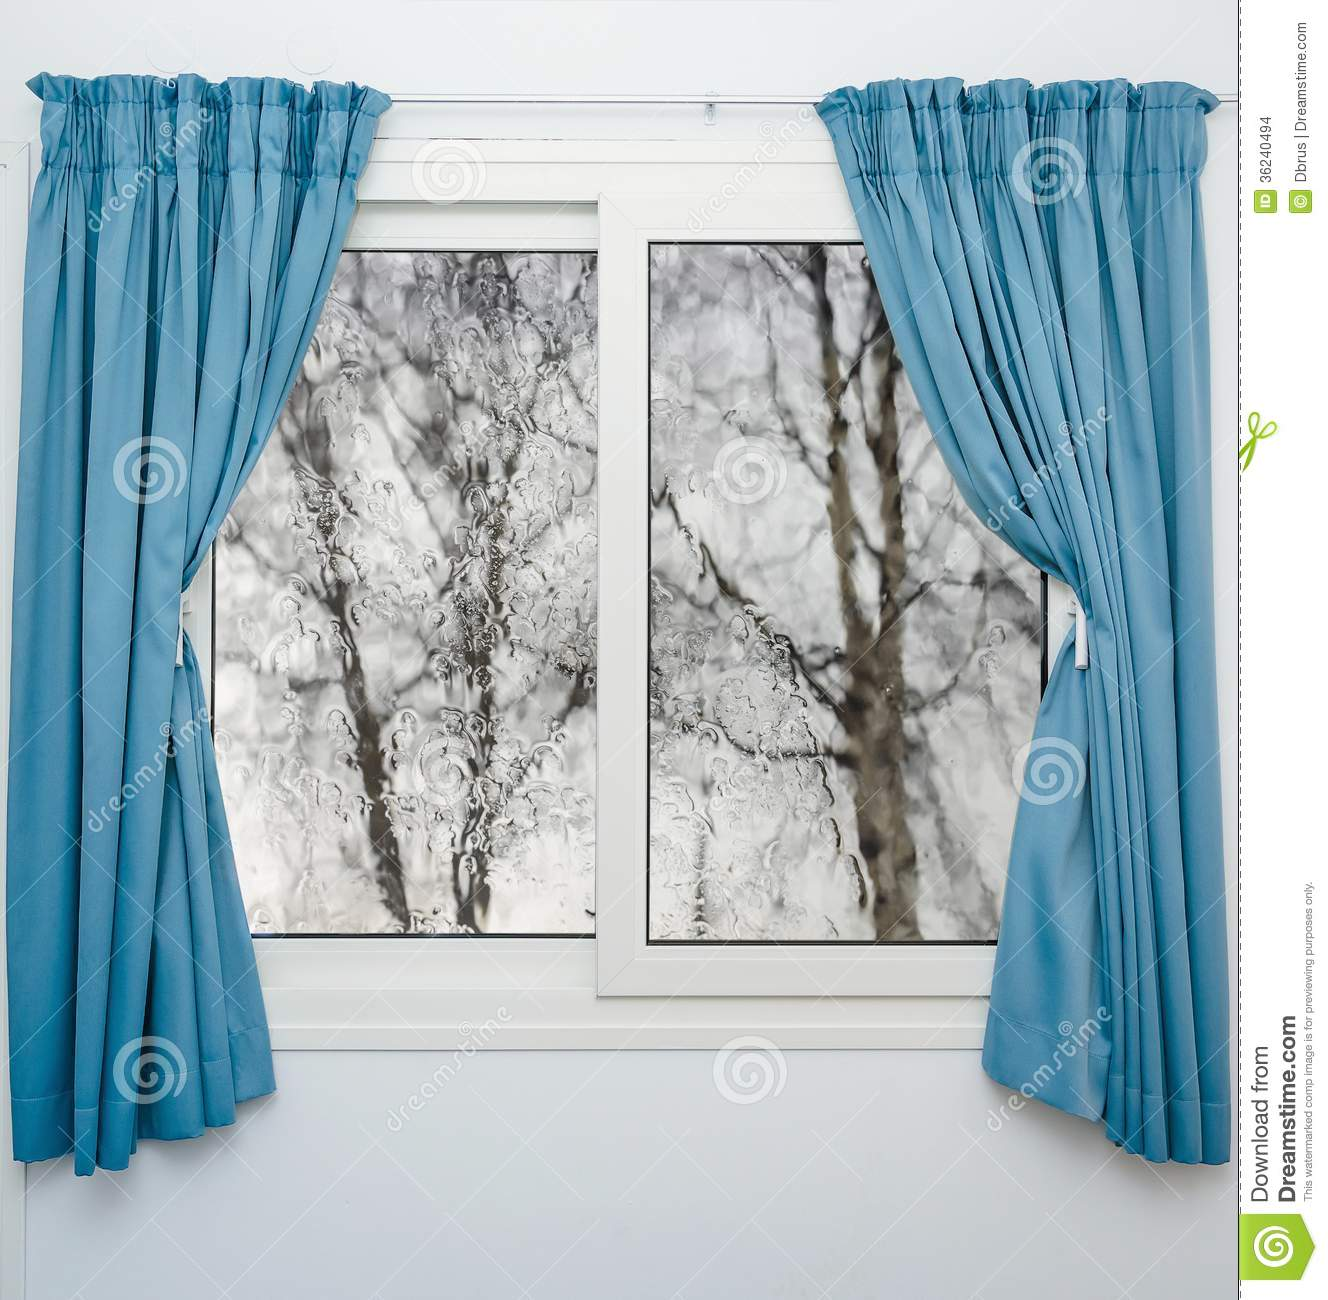 Download Closed Window Curtains In Rainy Autumn Weather Stock Photo